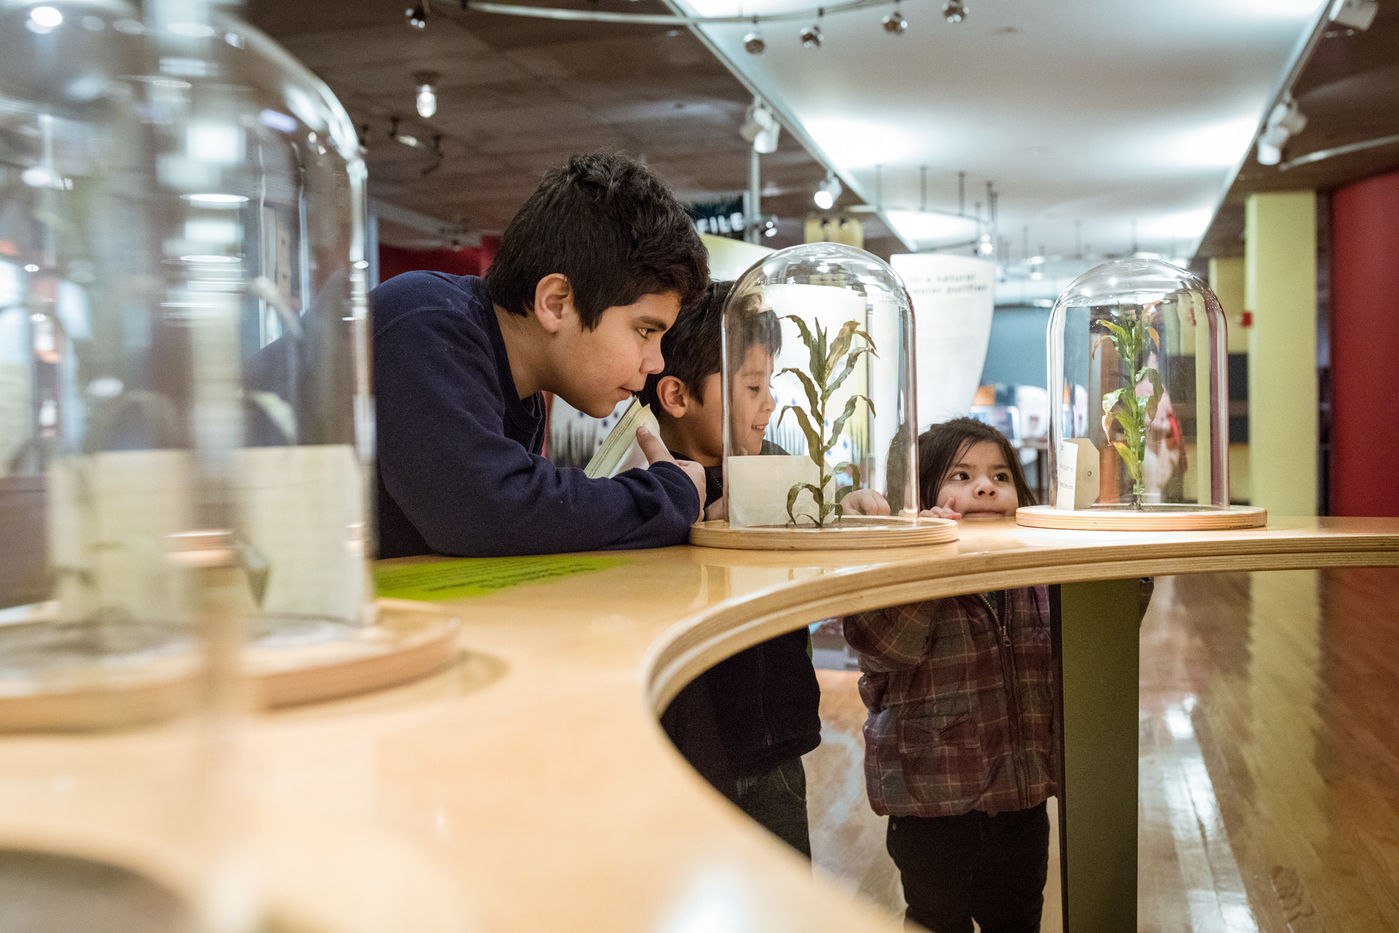 Two boys and a girl look closely at models of plants on display under glass domes on top of a table.